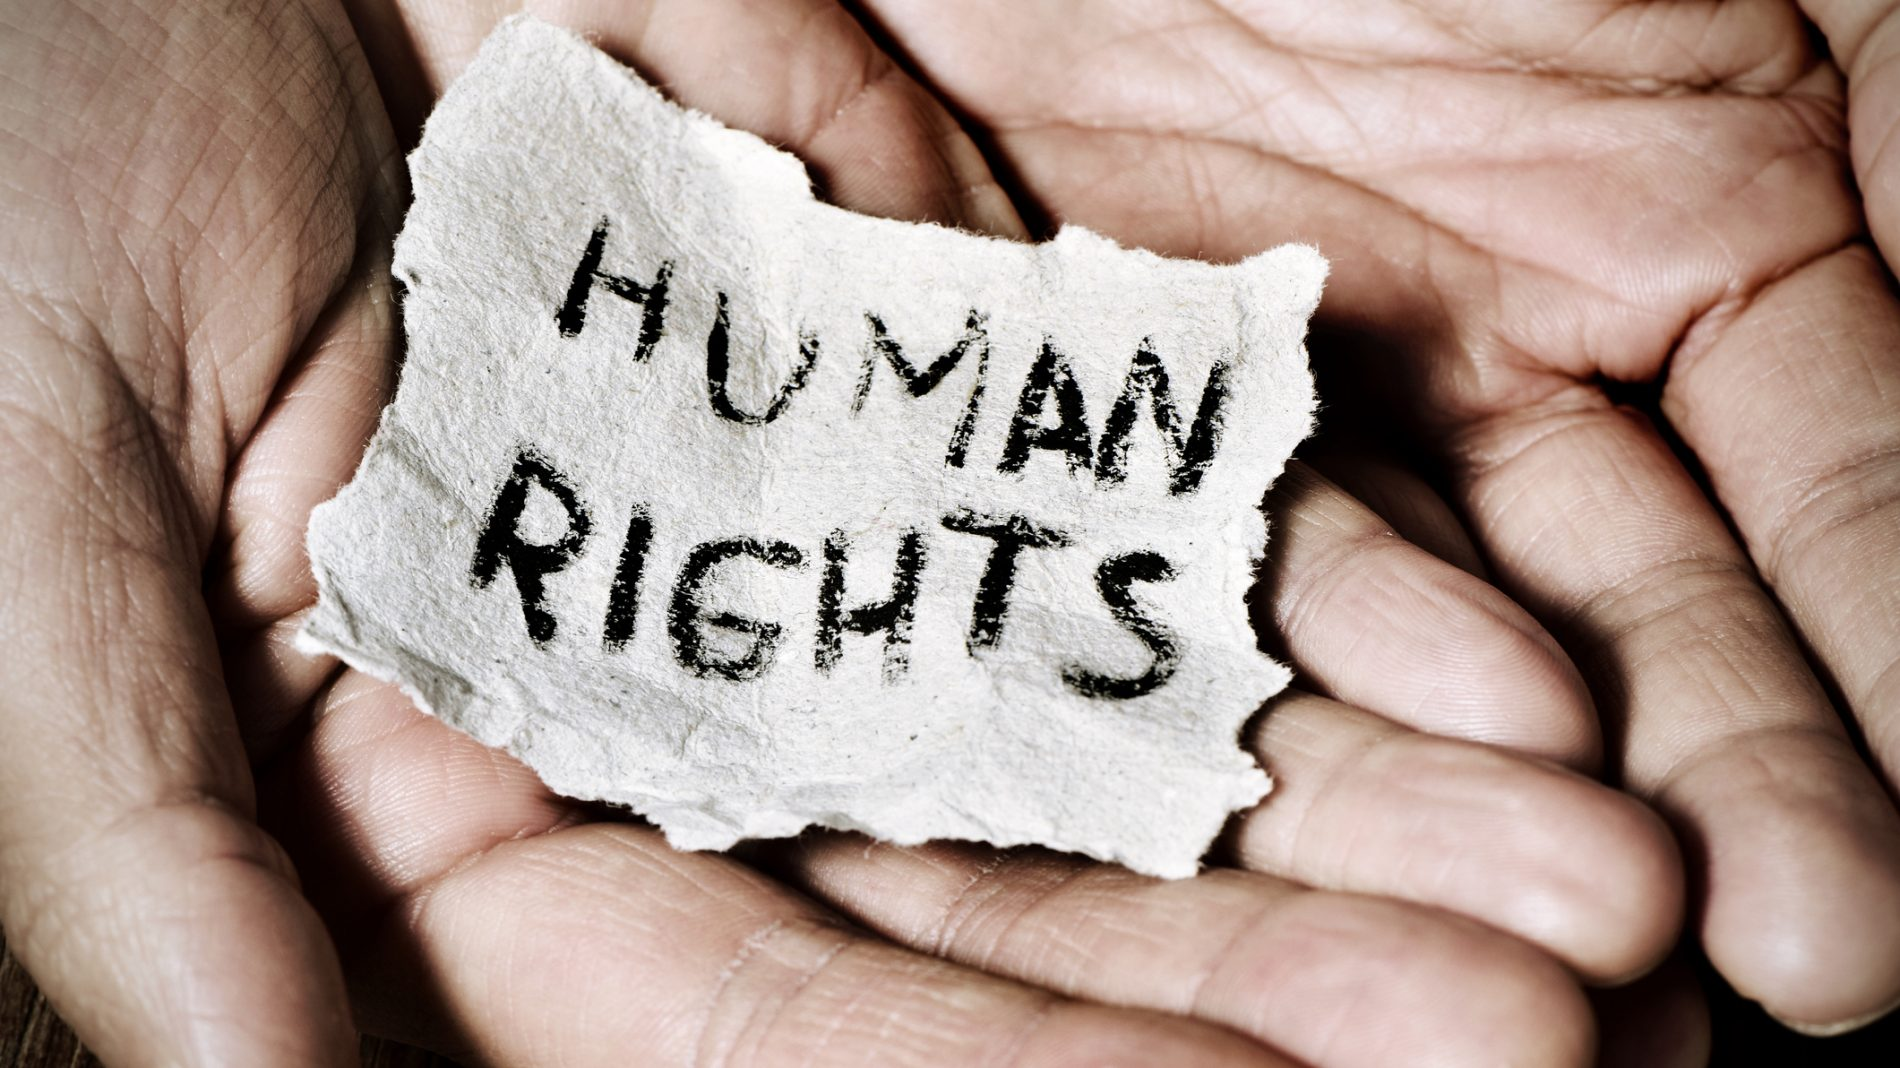 hands holding piece of paper saying HUMAN RIGHTS